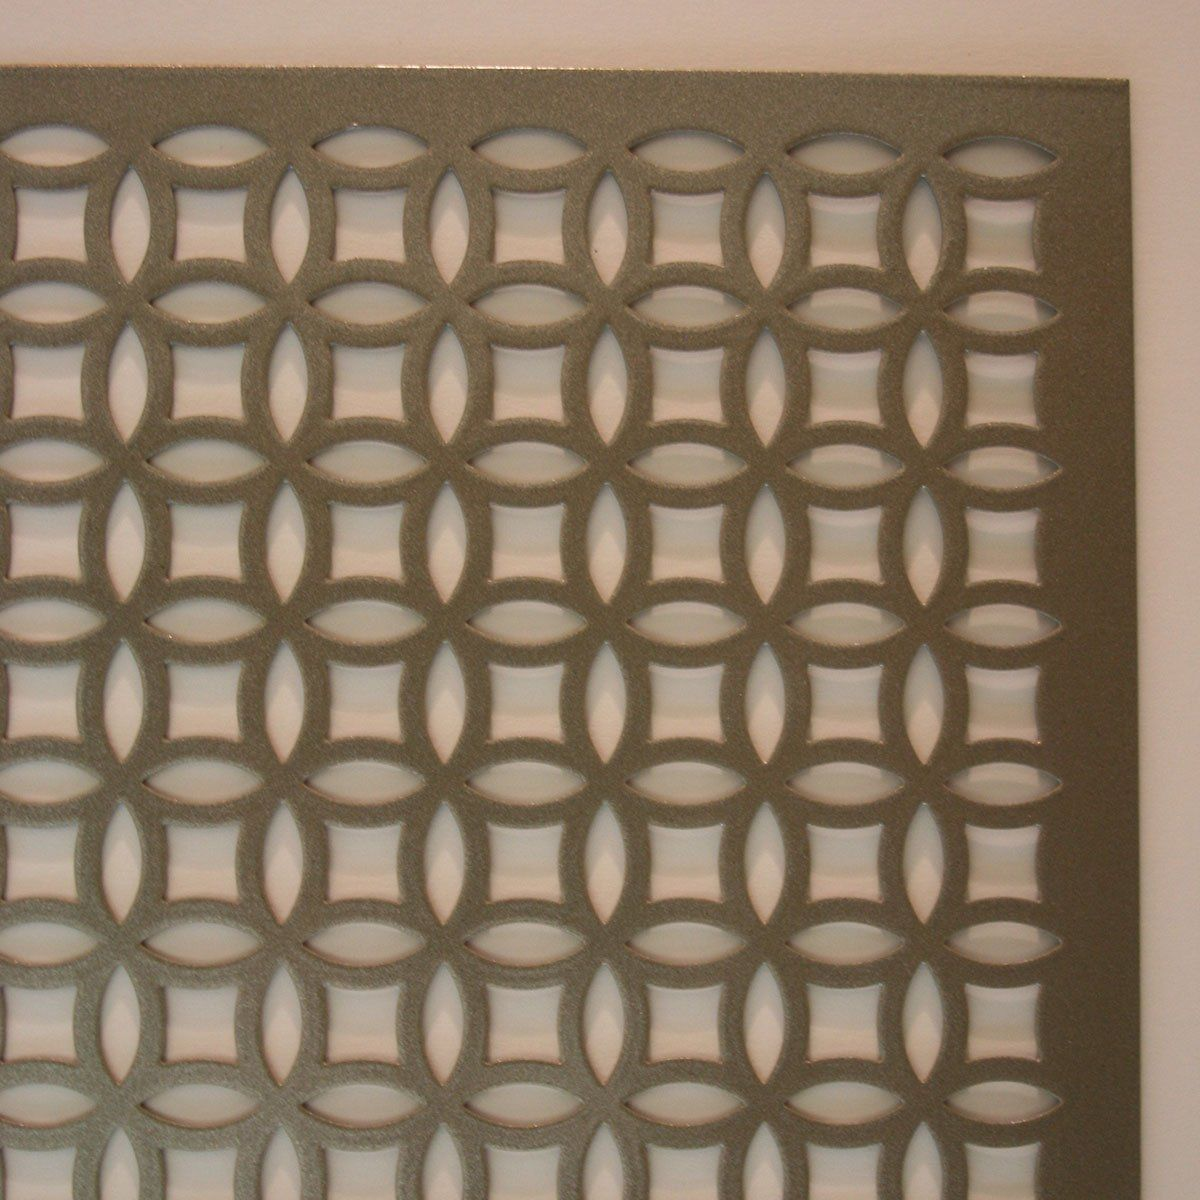 M D Building Products 57010 1 Feet By 2 Feet 020 Inch Thick Elliptical Aluminum Sheet Perforated Sheet M M D Building Products Aluminium Sheet Floor Molding